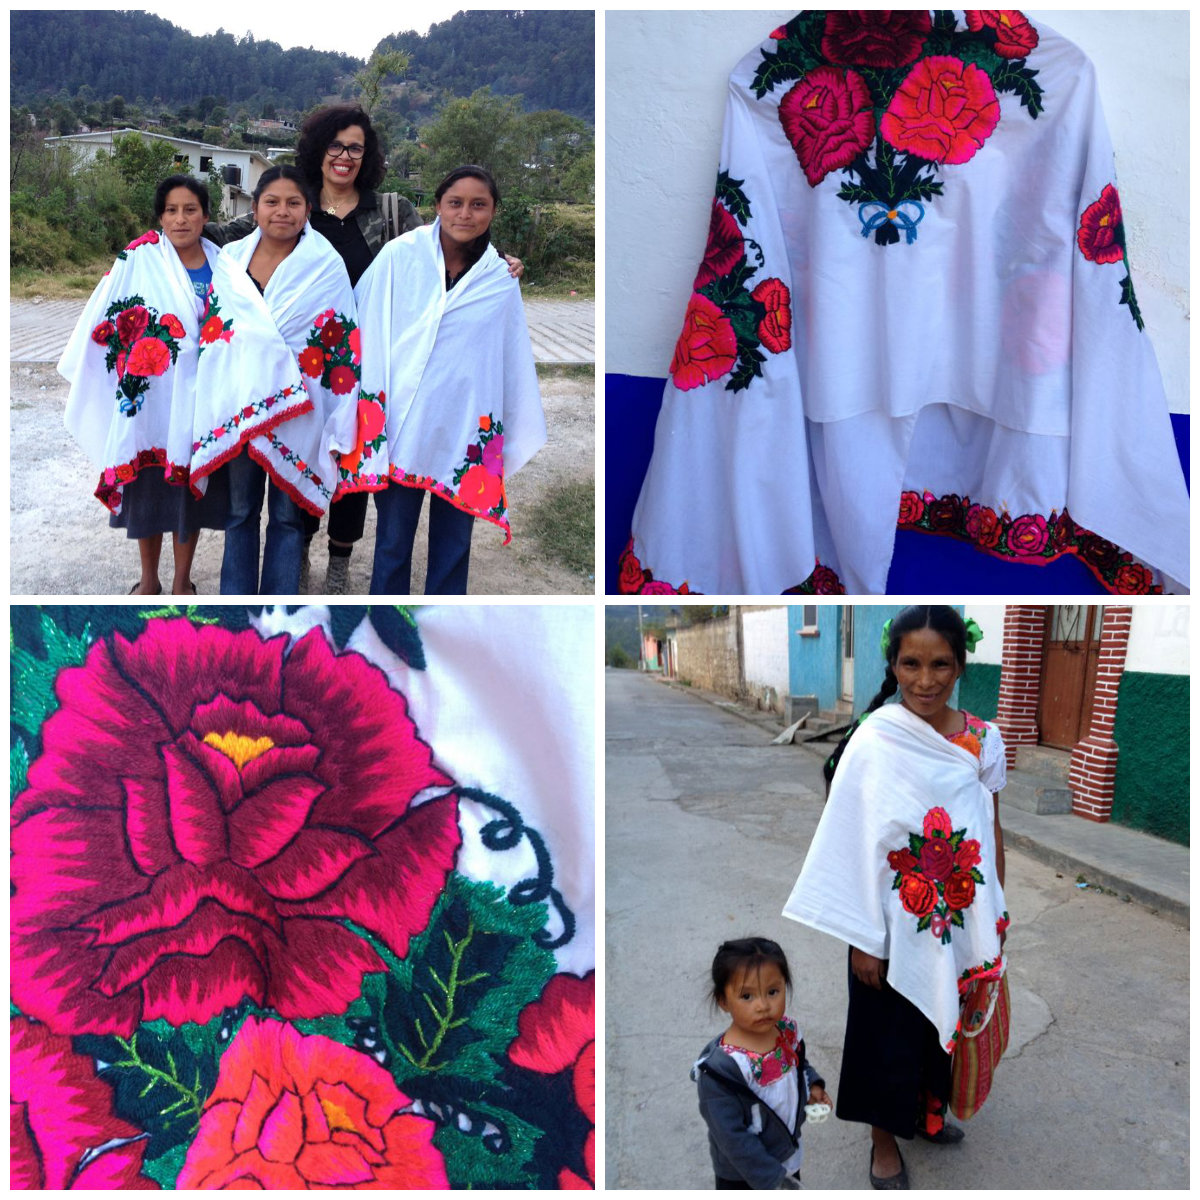 Embroidered shawls from Huixtan